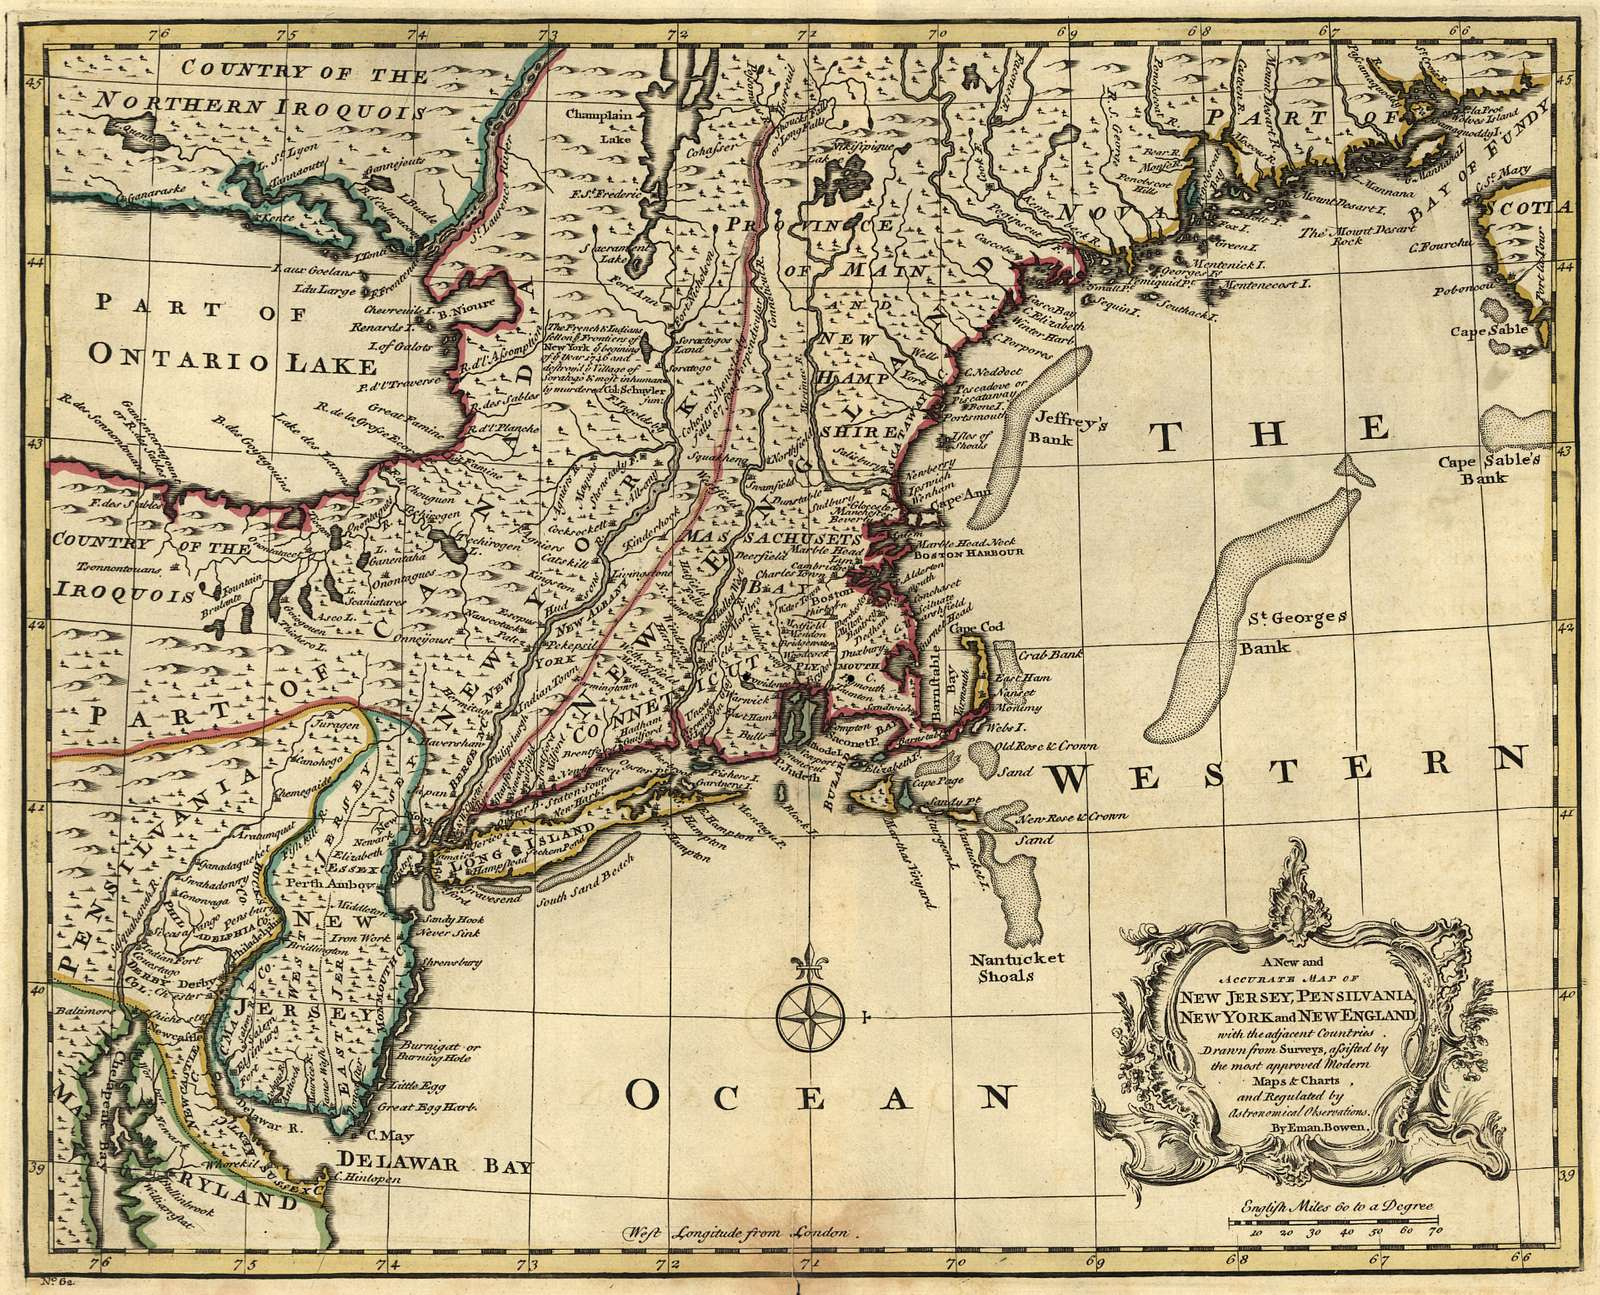 A new and accurate map of New Jersey, Pensilvania, New York and New England with the adjacent countries.